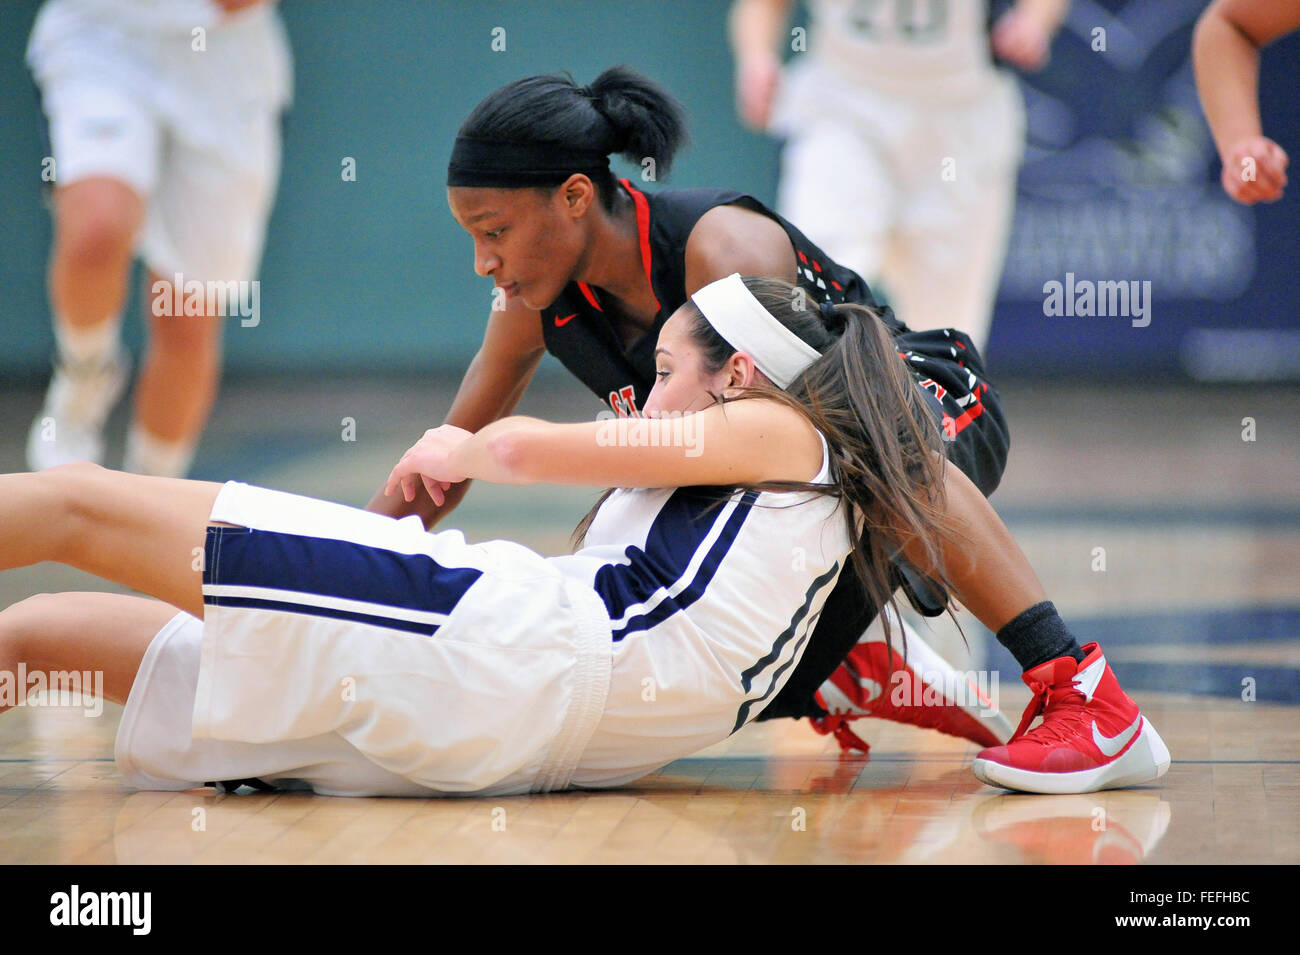 High school players fight  for the basketball and seek to claim possession during  a floor battle. USA. - Stock Image